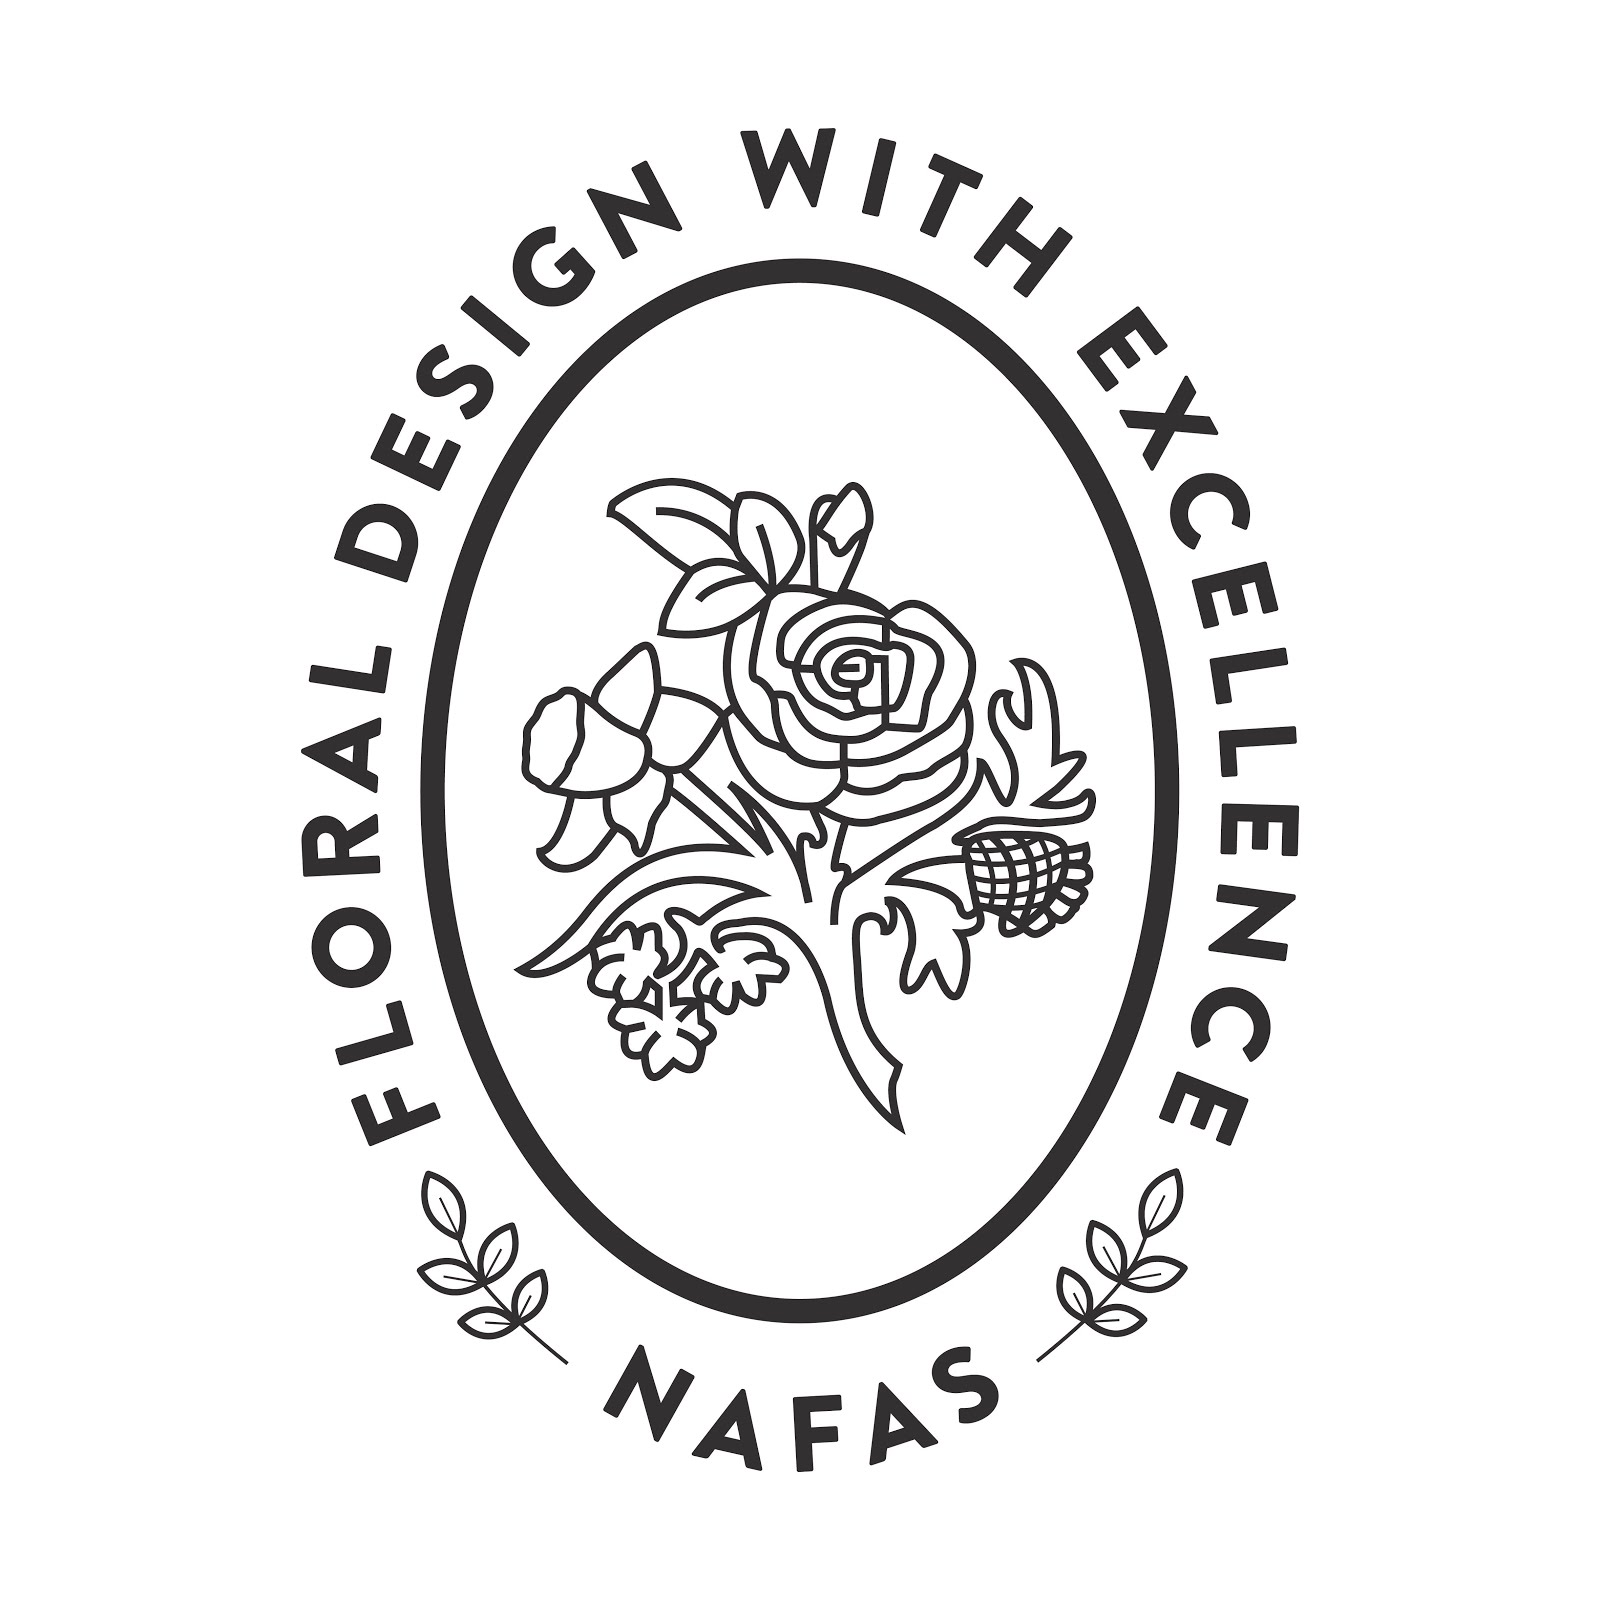 Member of the South Midlands Area of NAFAS        (Reg. Charity 292789)